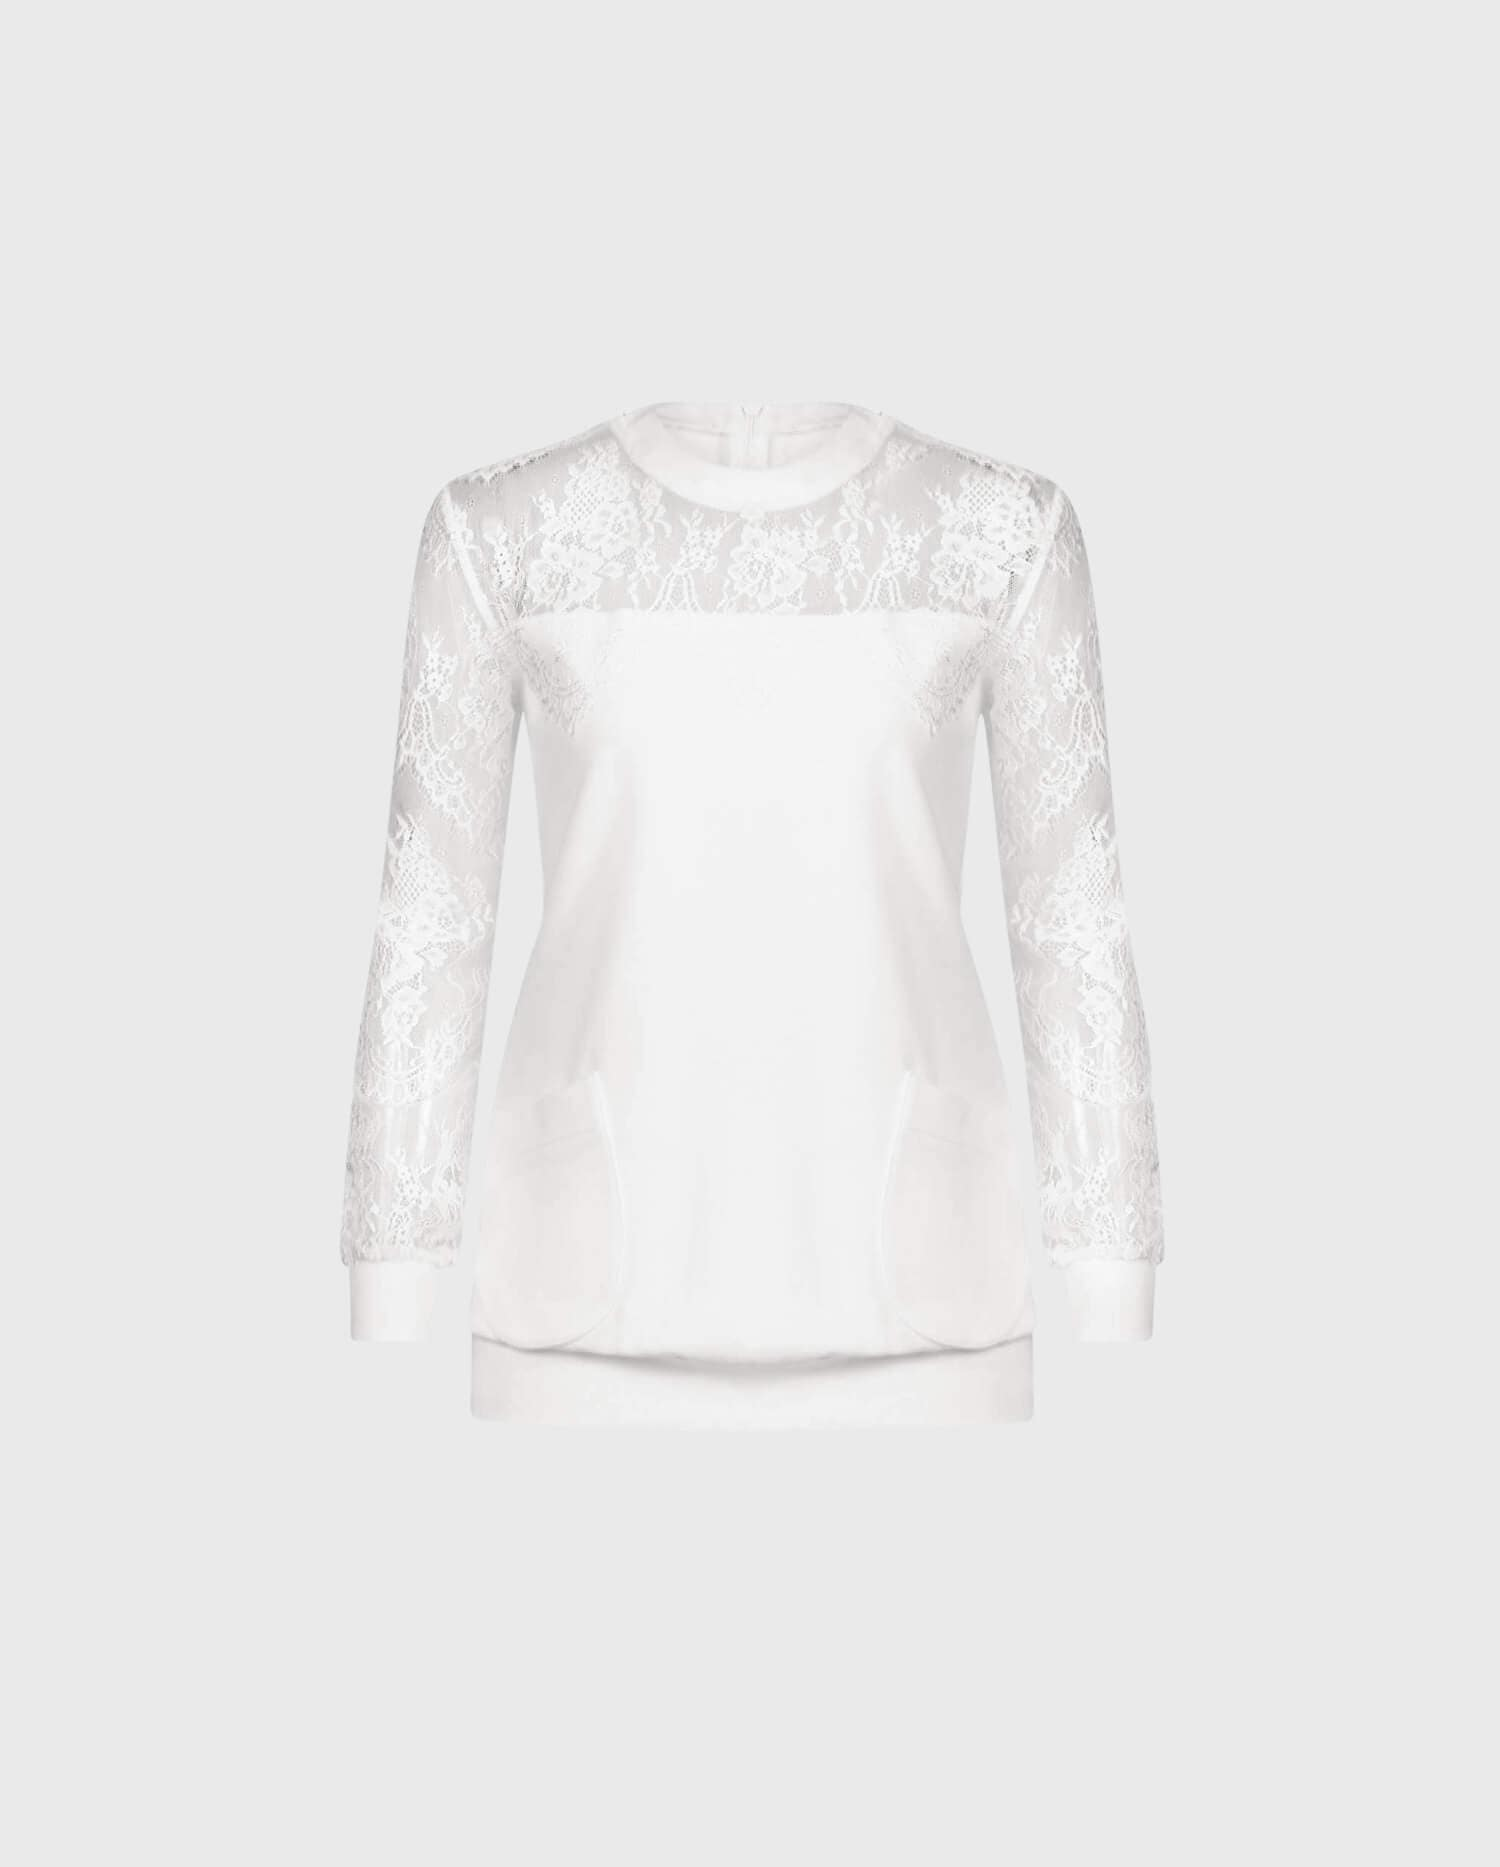 The UZEL is a casual inspired white long sleeve sweatshirt with an abstract floral lace yoke.